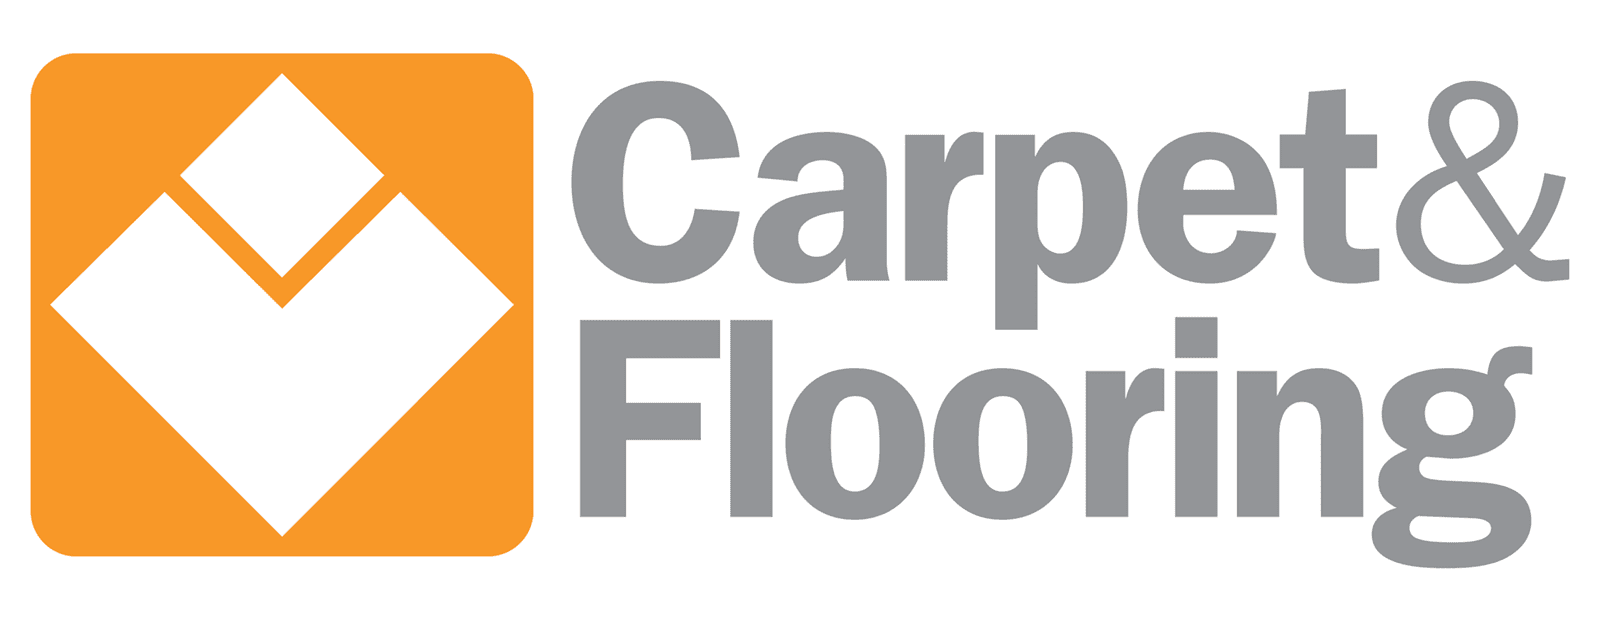 Carpet & Flooring only logo